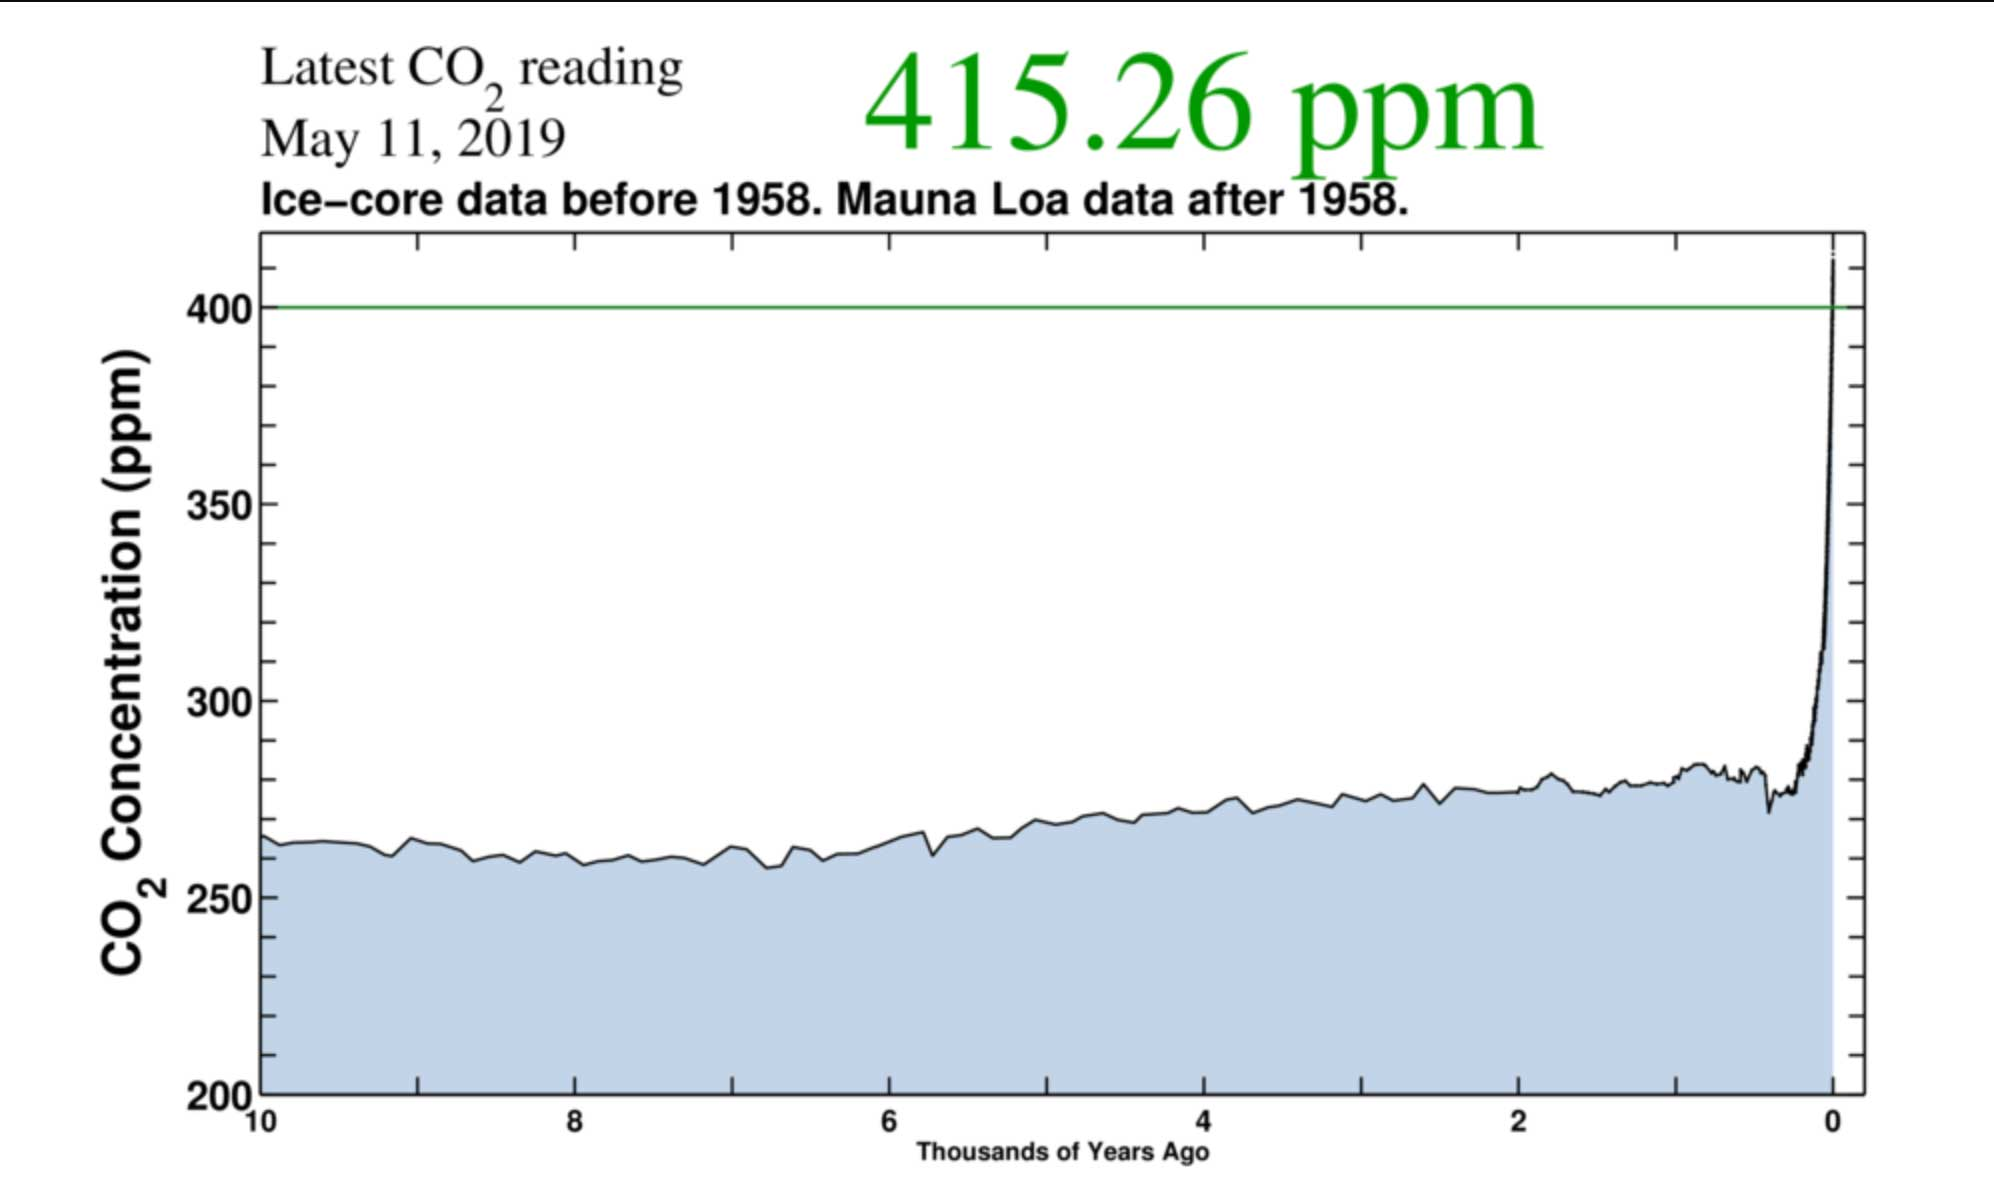 CO2 emissions over time as recorded by measurements of Arctic ice and the Mauna Loa Observatory. Courtesy of the Scripps Institution of Oceanography.